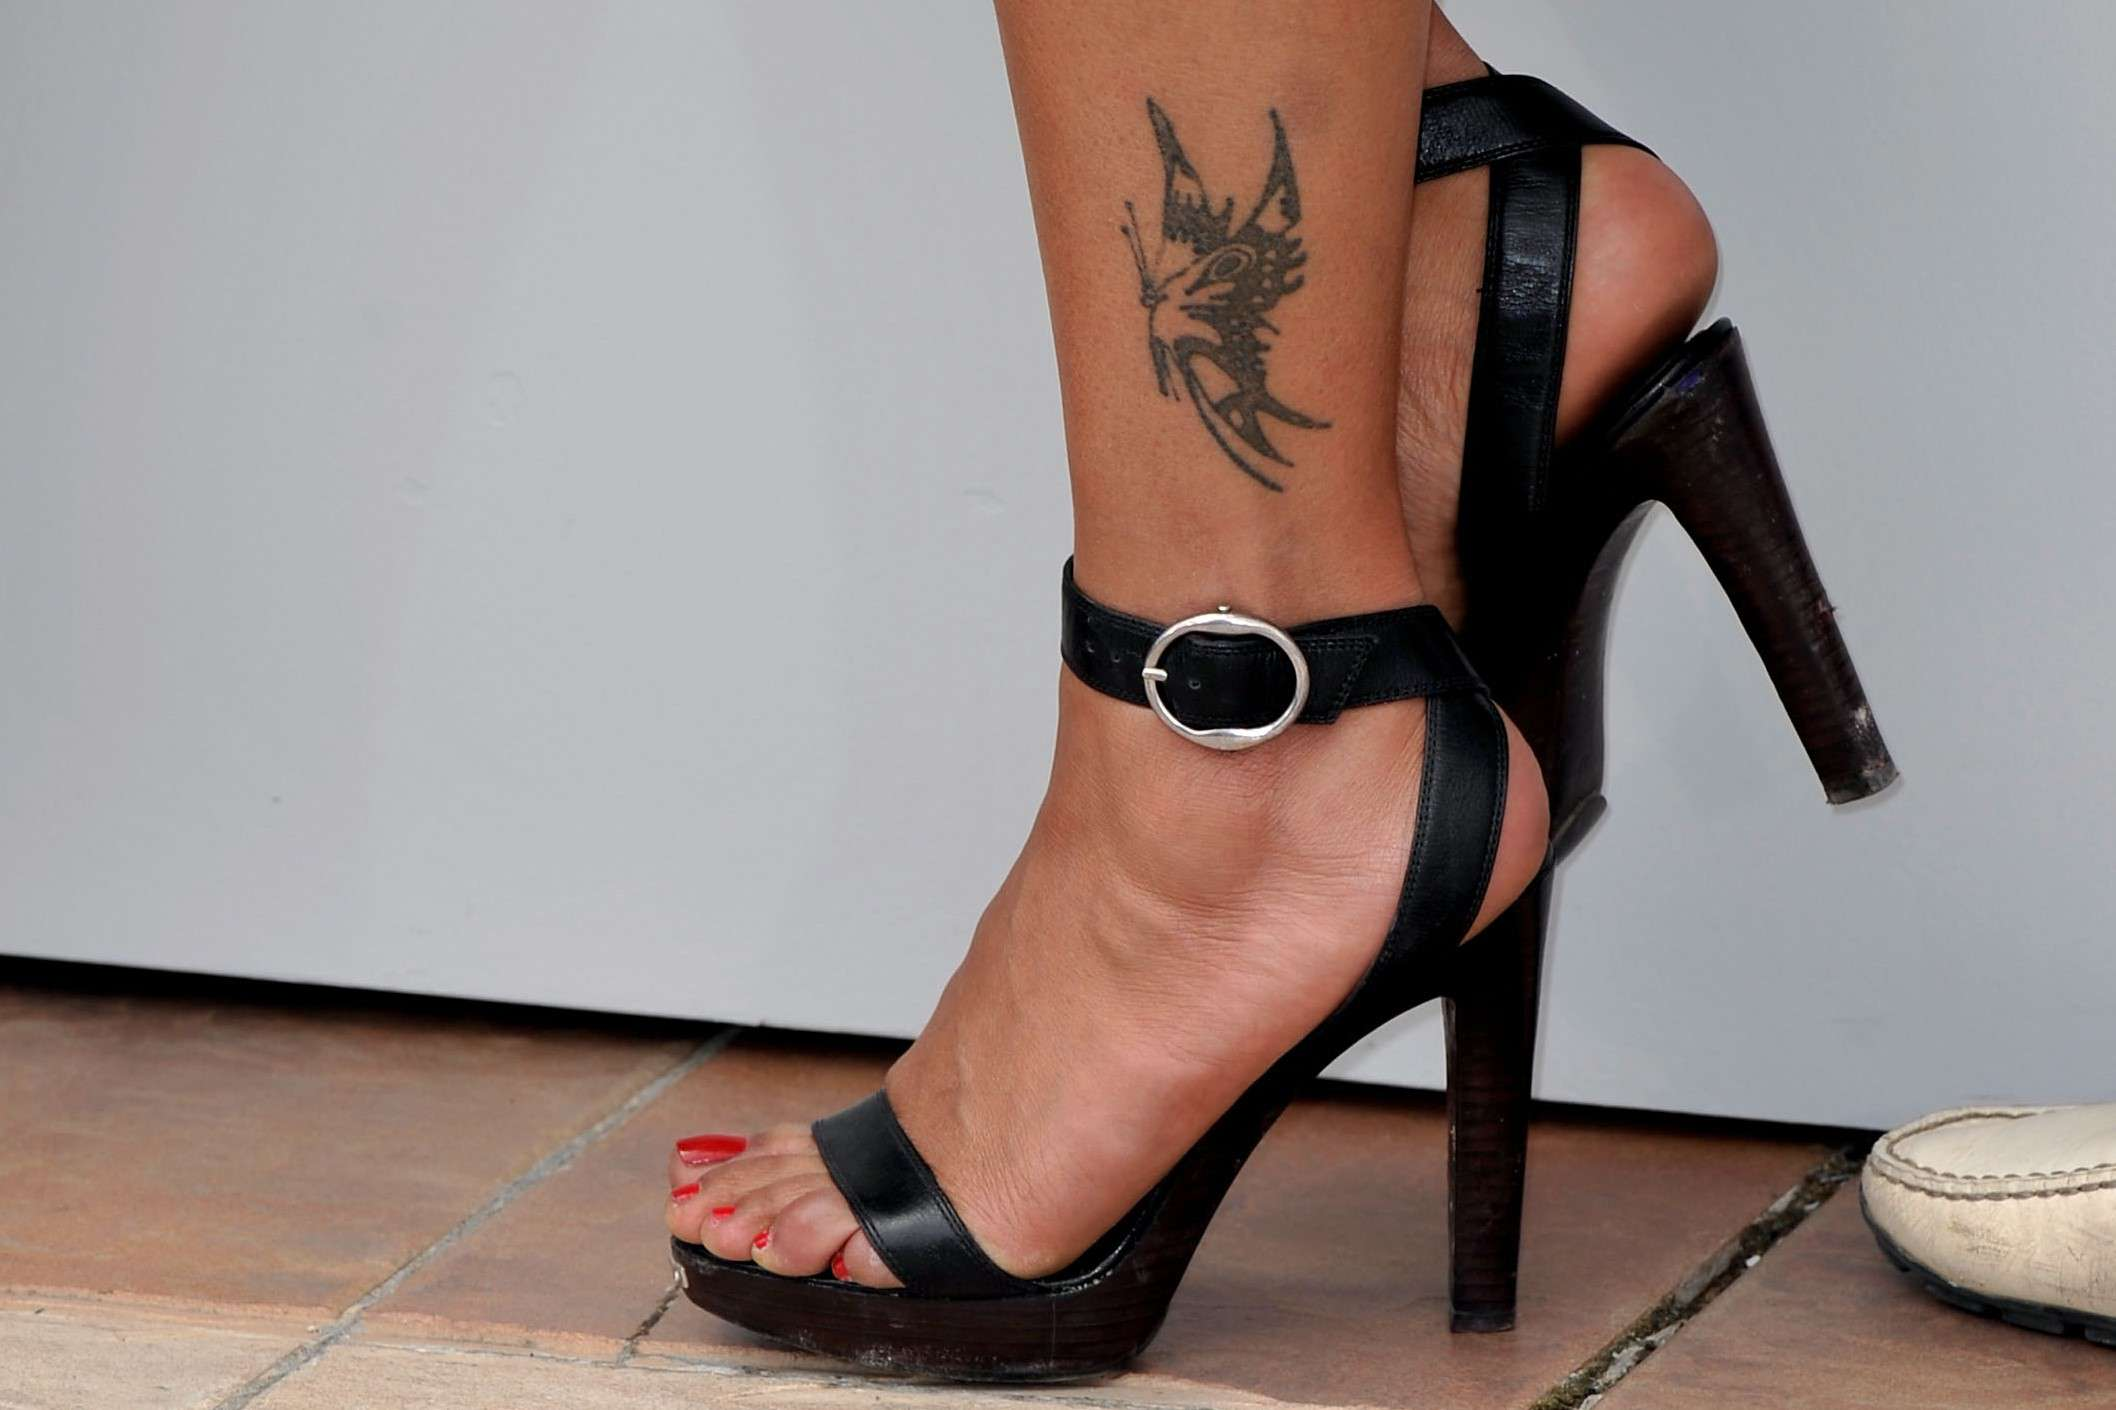 Woman wearing black high heeled sandals with a butterfly tattoo on her ankle